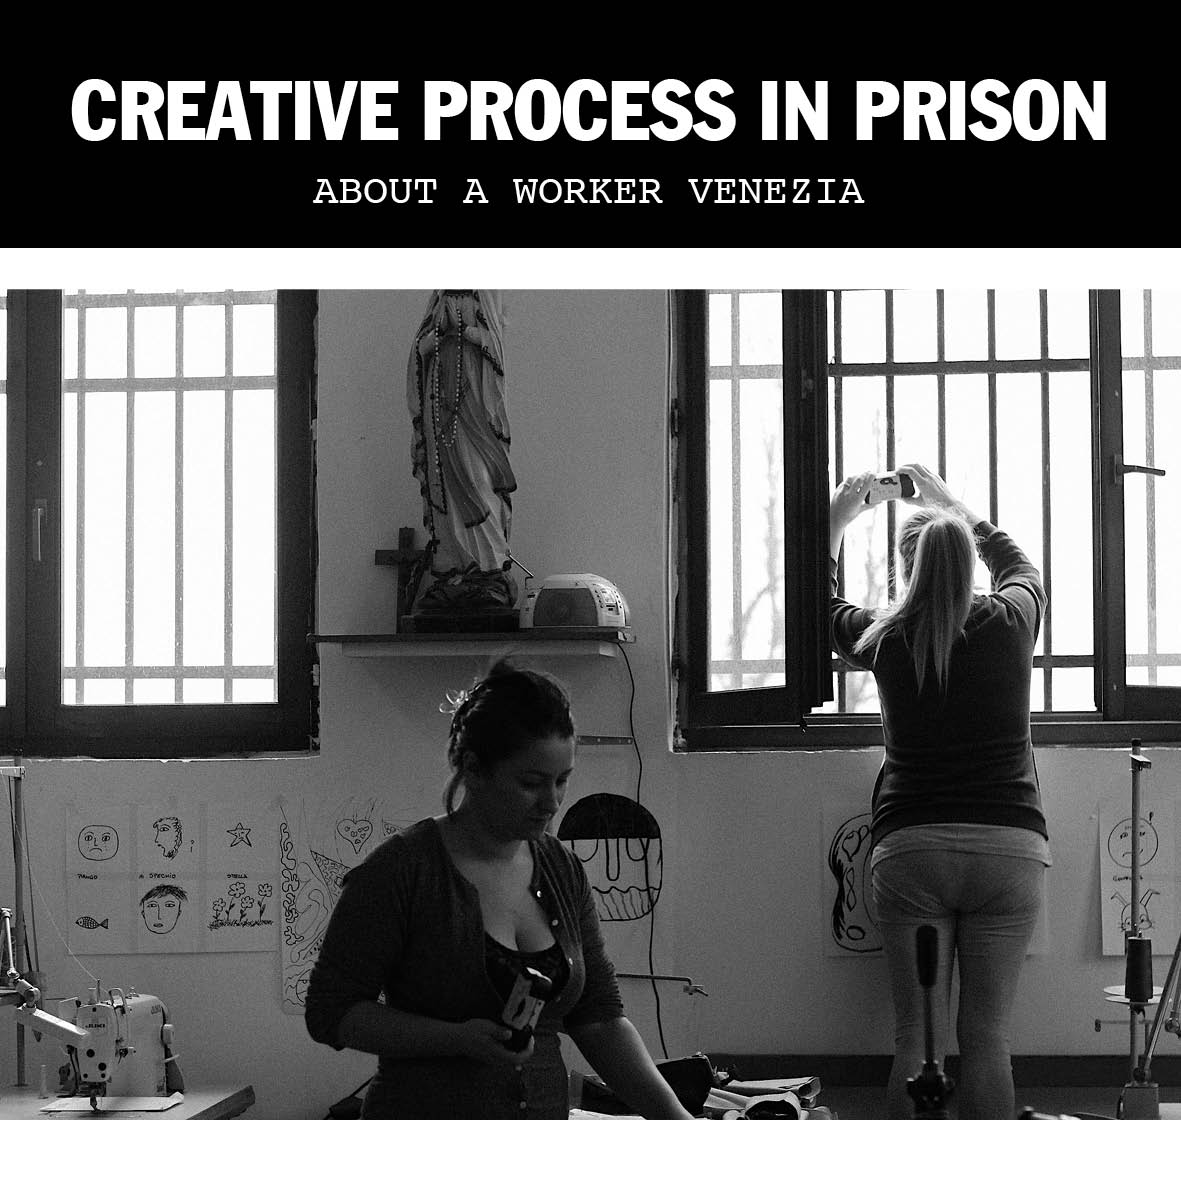 creative process in prison.jpg